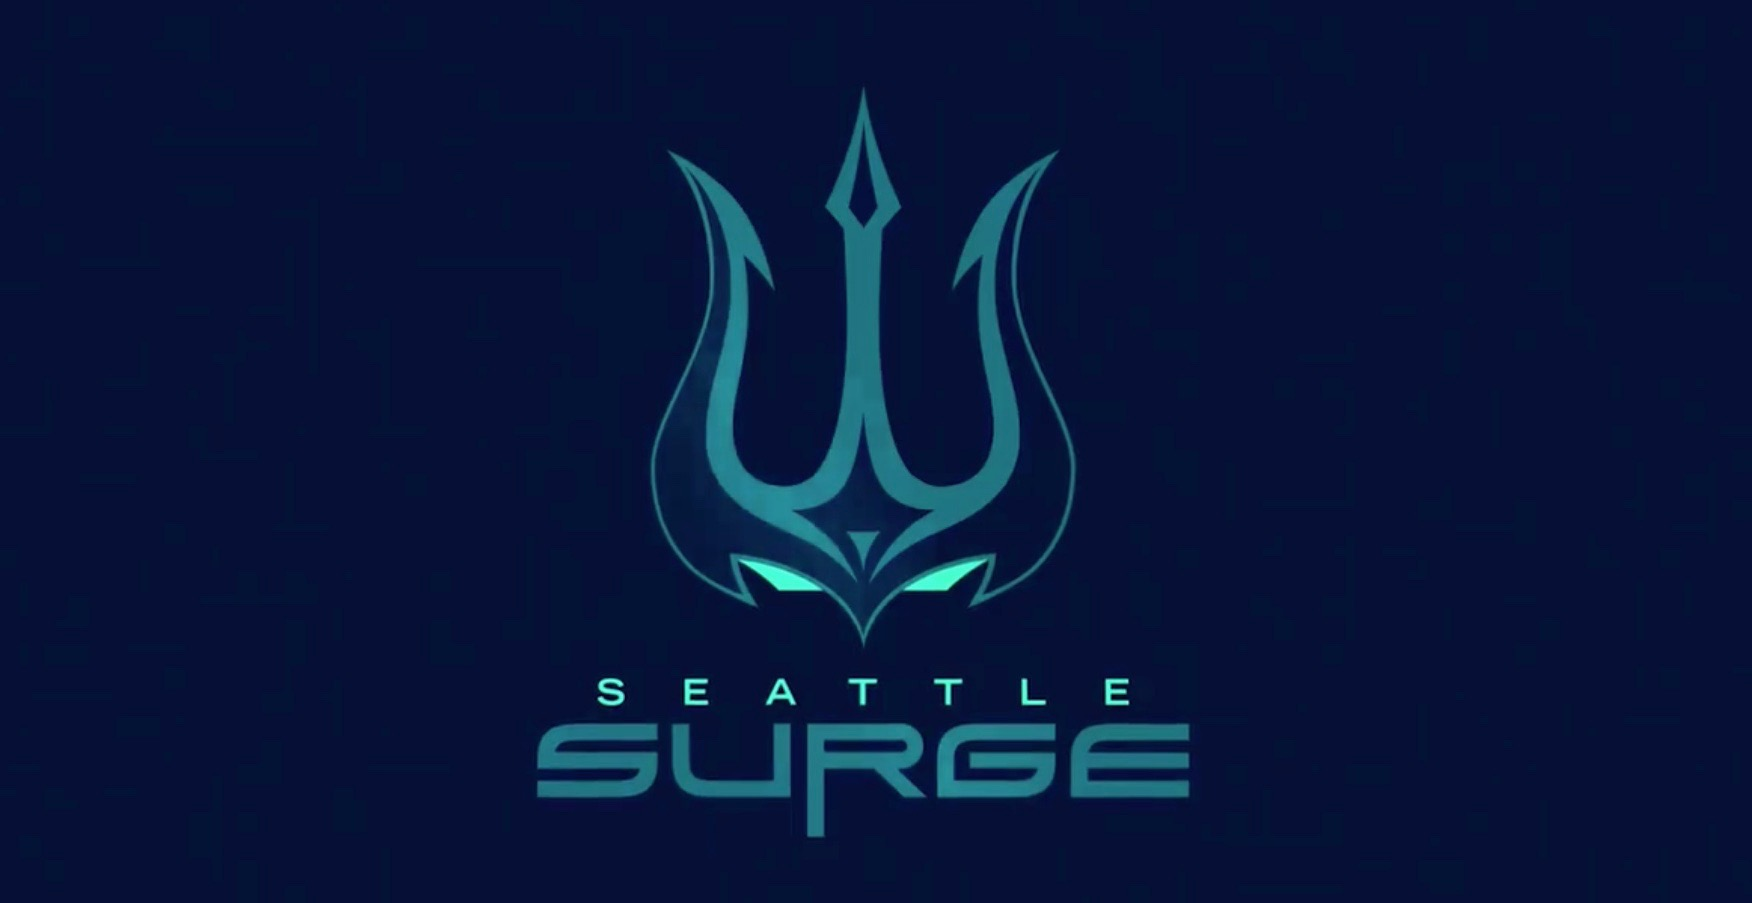 Seattle Surge Call of Duty team reveals logo and branding